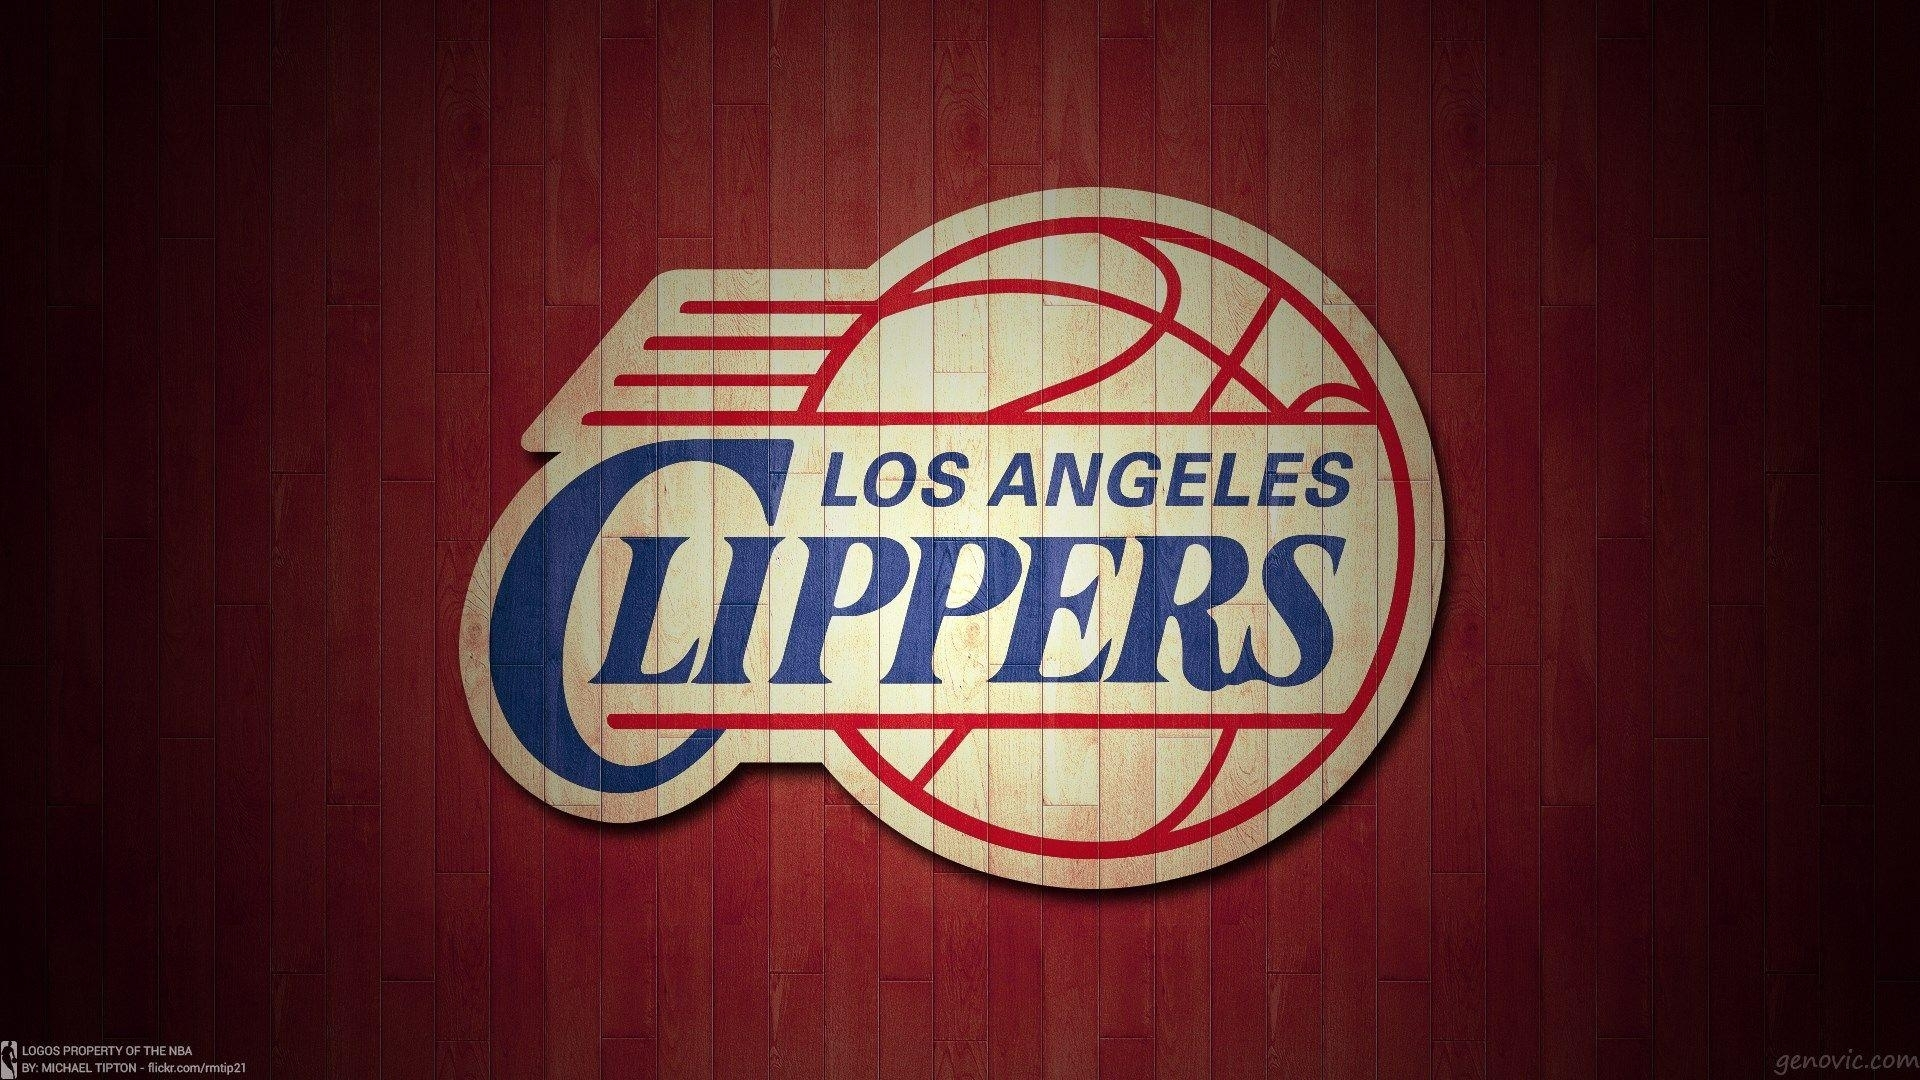 los angeles clippers wallpapers - wallpaper cave